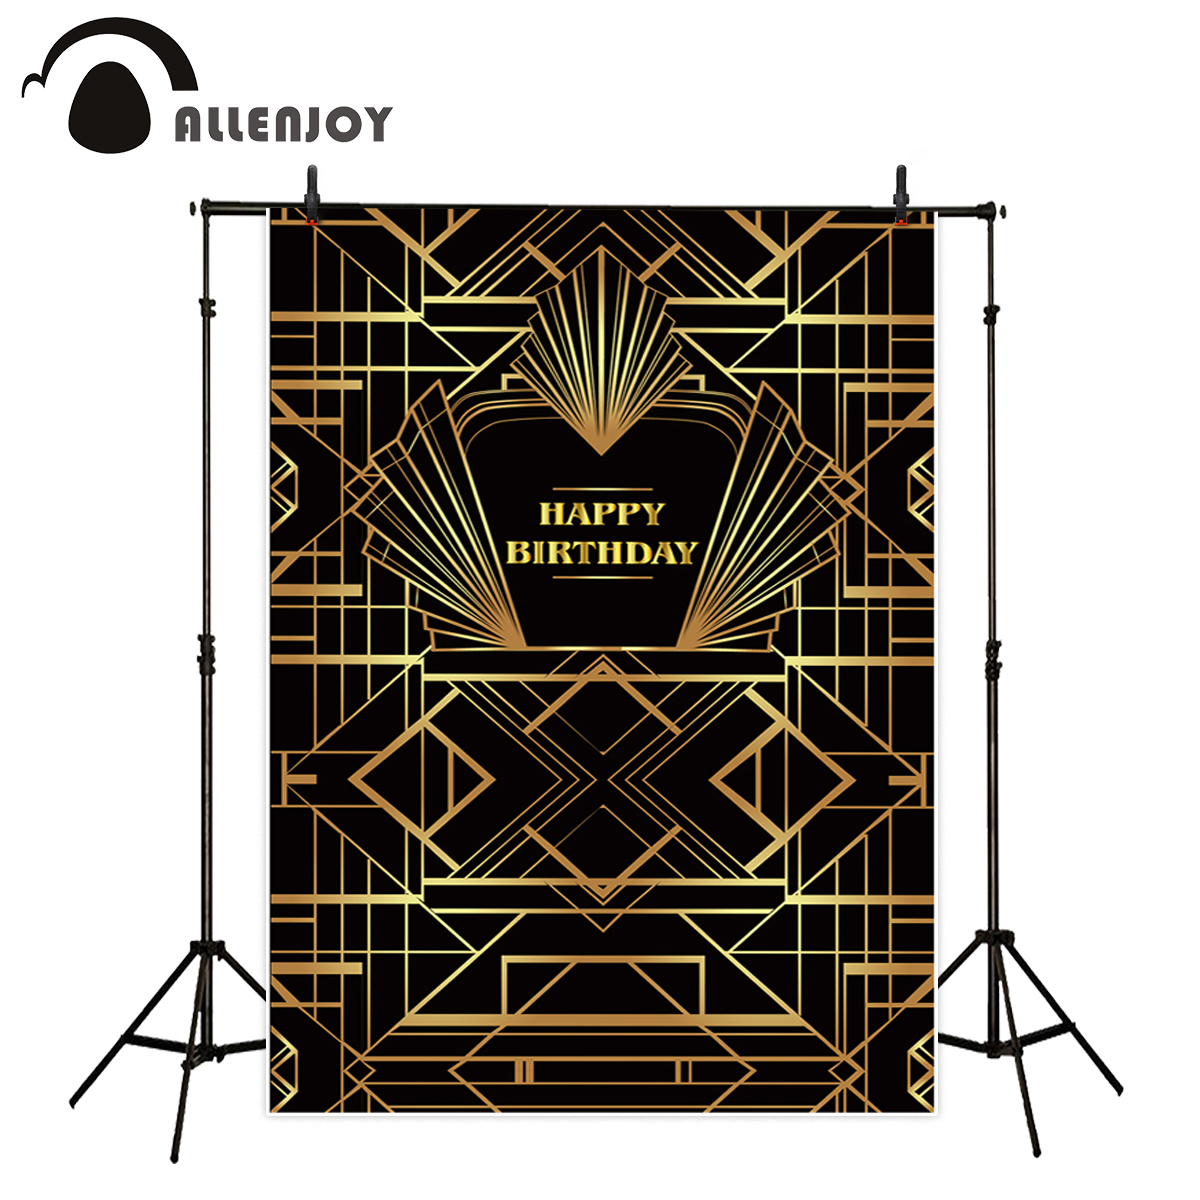 Allenjoy background for photo studio Gatsby Birthday Party kids background for photography original design customize photocall photography children s background birthday cake gift present greeting photocall customize cute studio photo prop